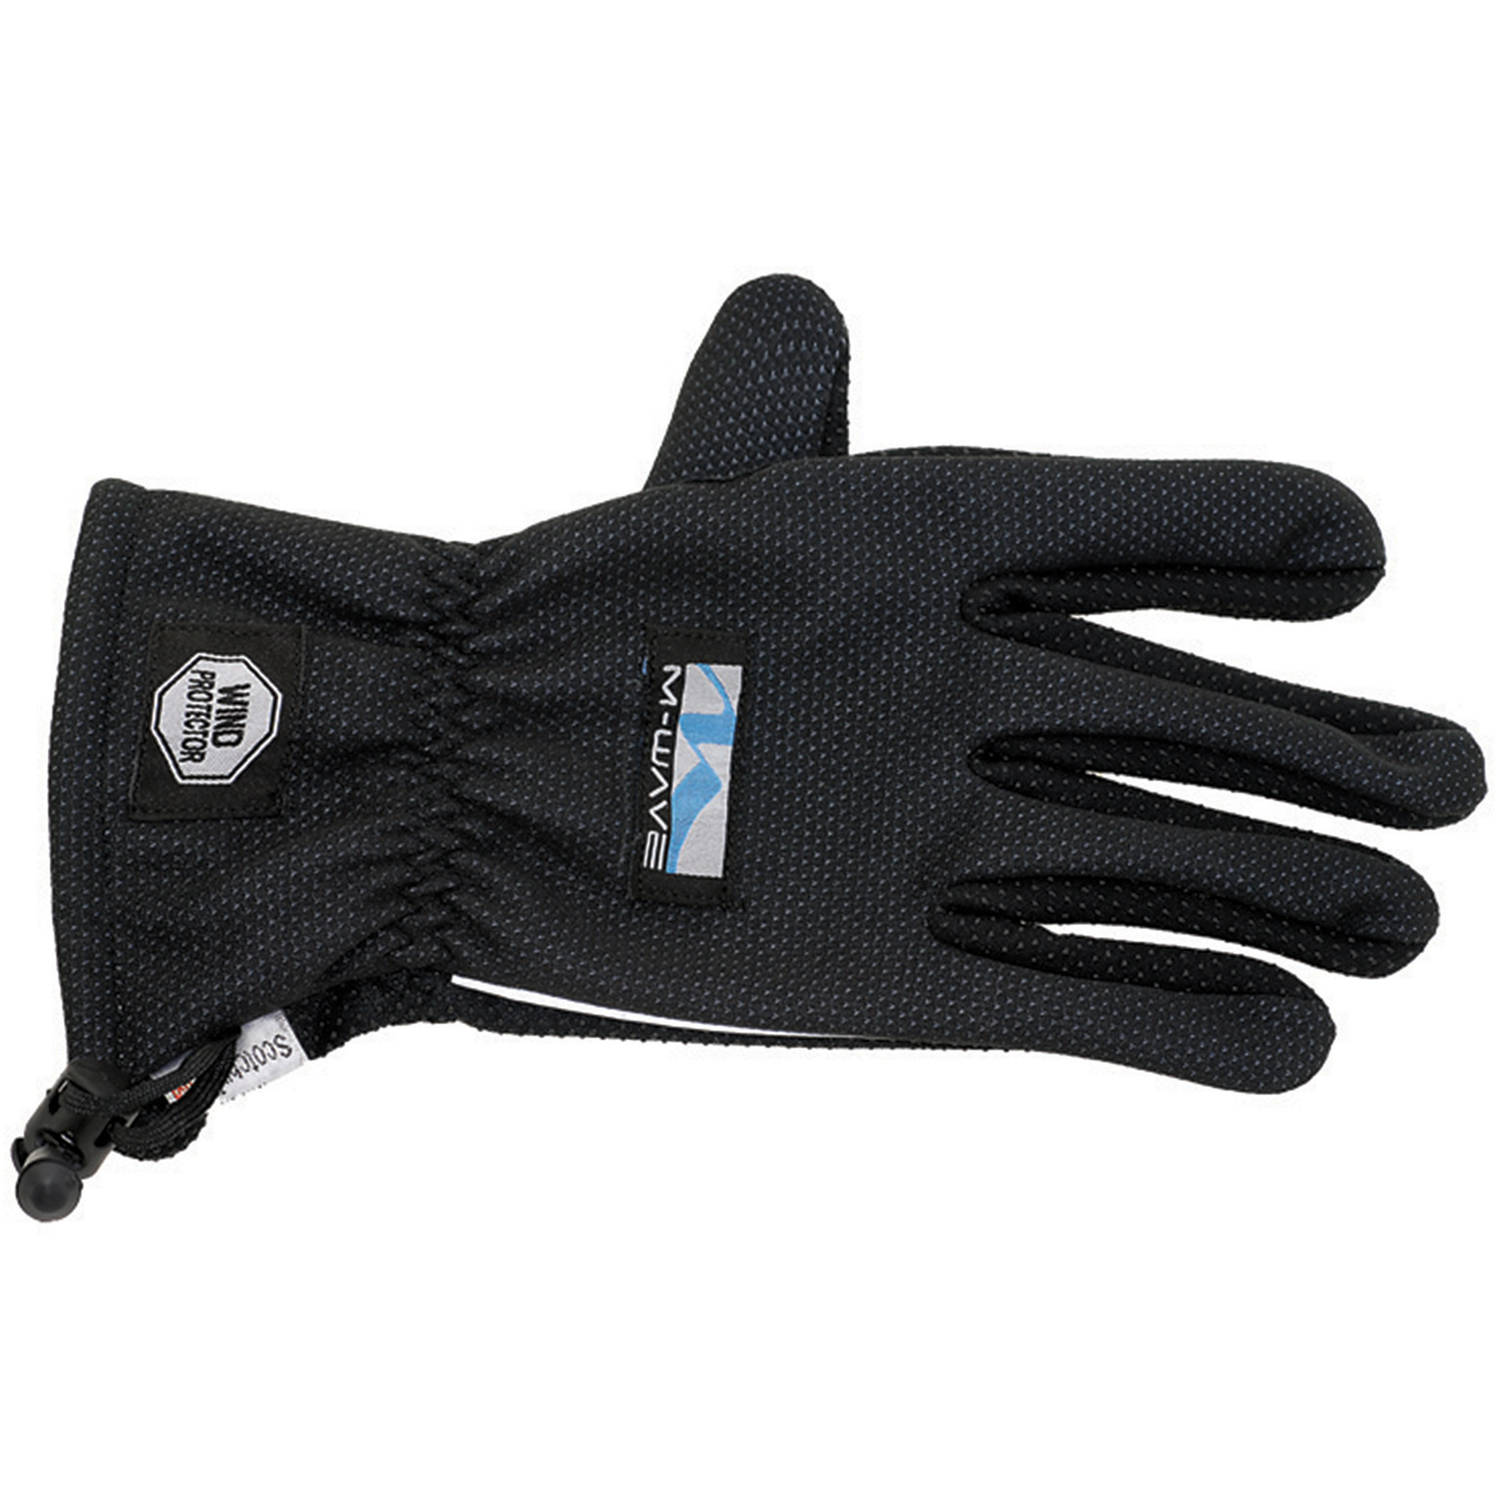 Ventura Winter Riding Gloves, Large/XL